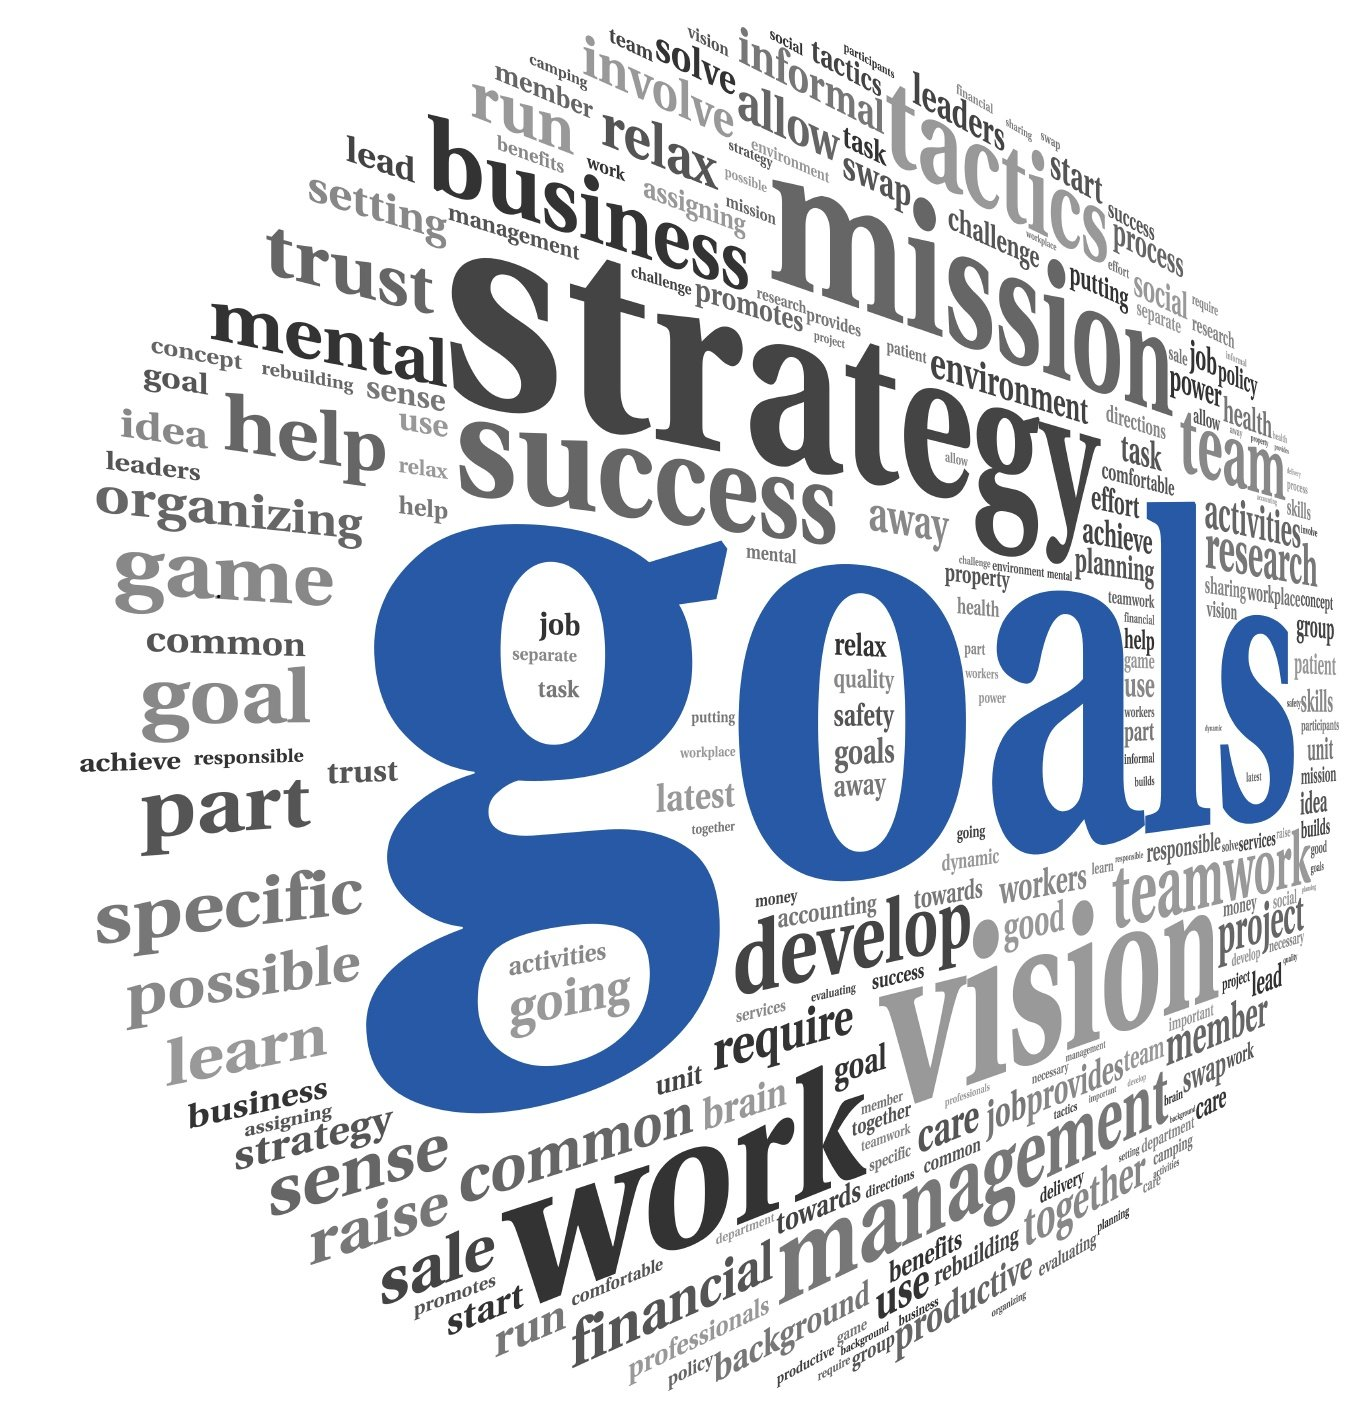 Strategy and Goals